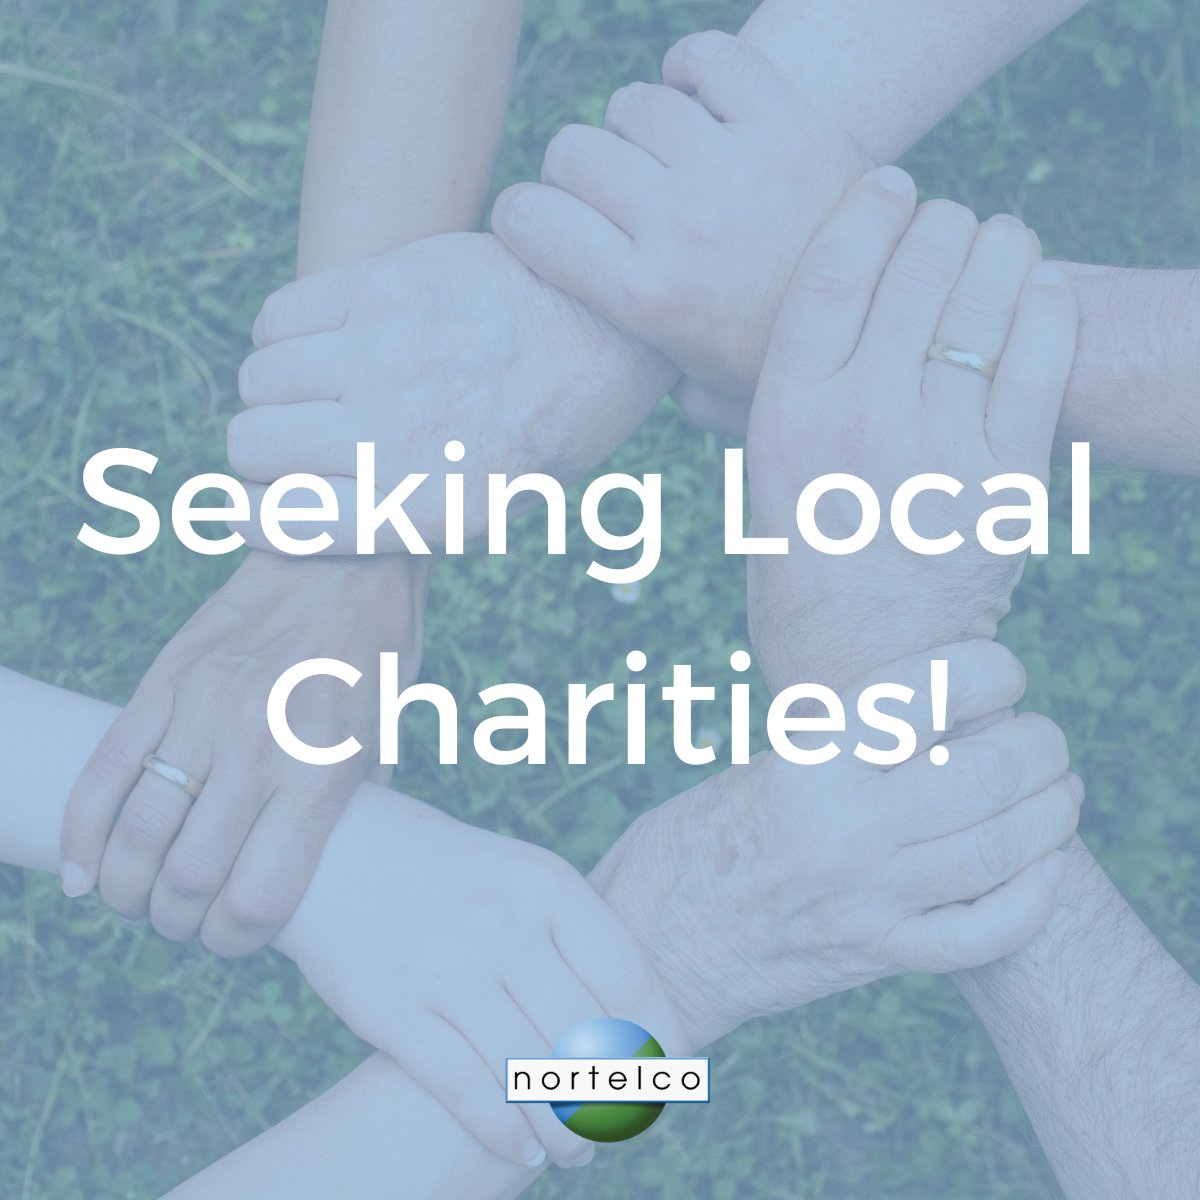 This year we are looking to work with a local charity and we'd like you to get involved! Please let us know of any local charities you think we should work with and we will choose the top 3 most requested for you all to pick the final winner! #bedale #northyorkshire #charity